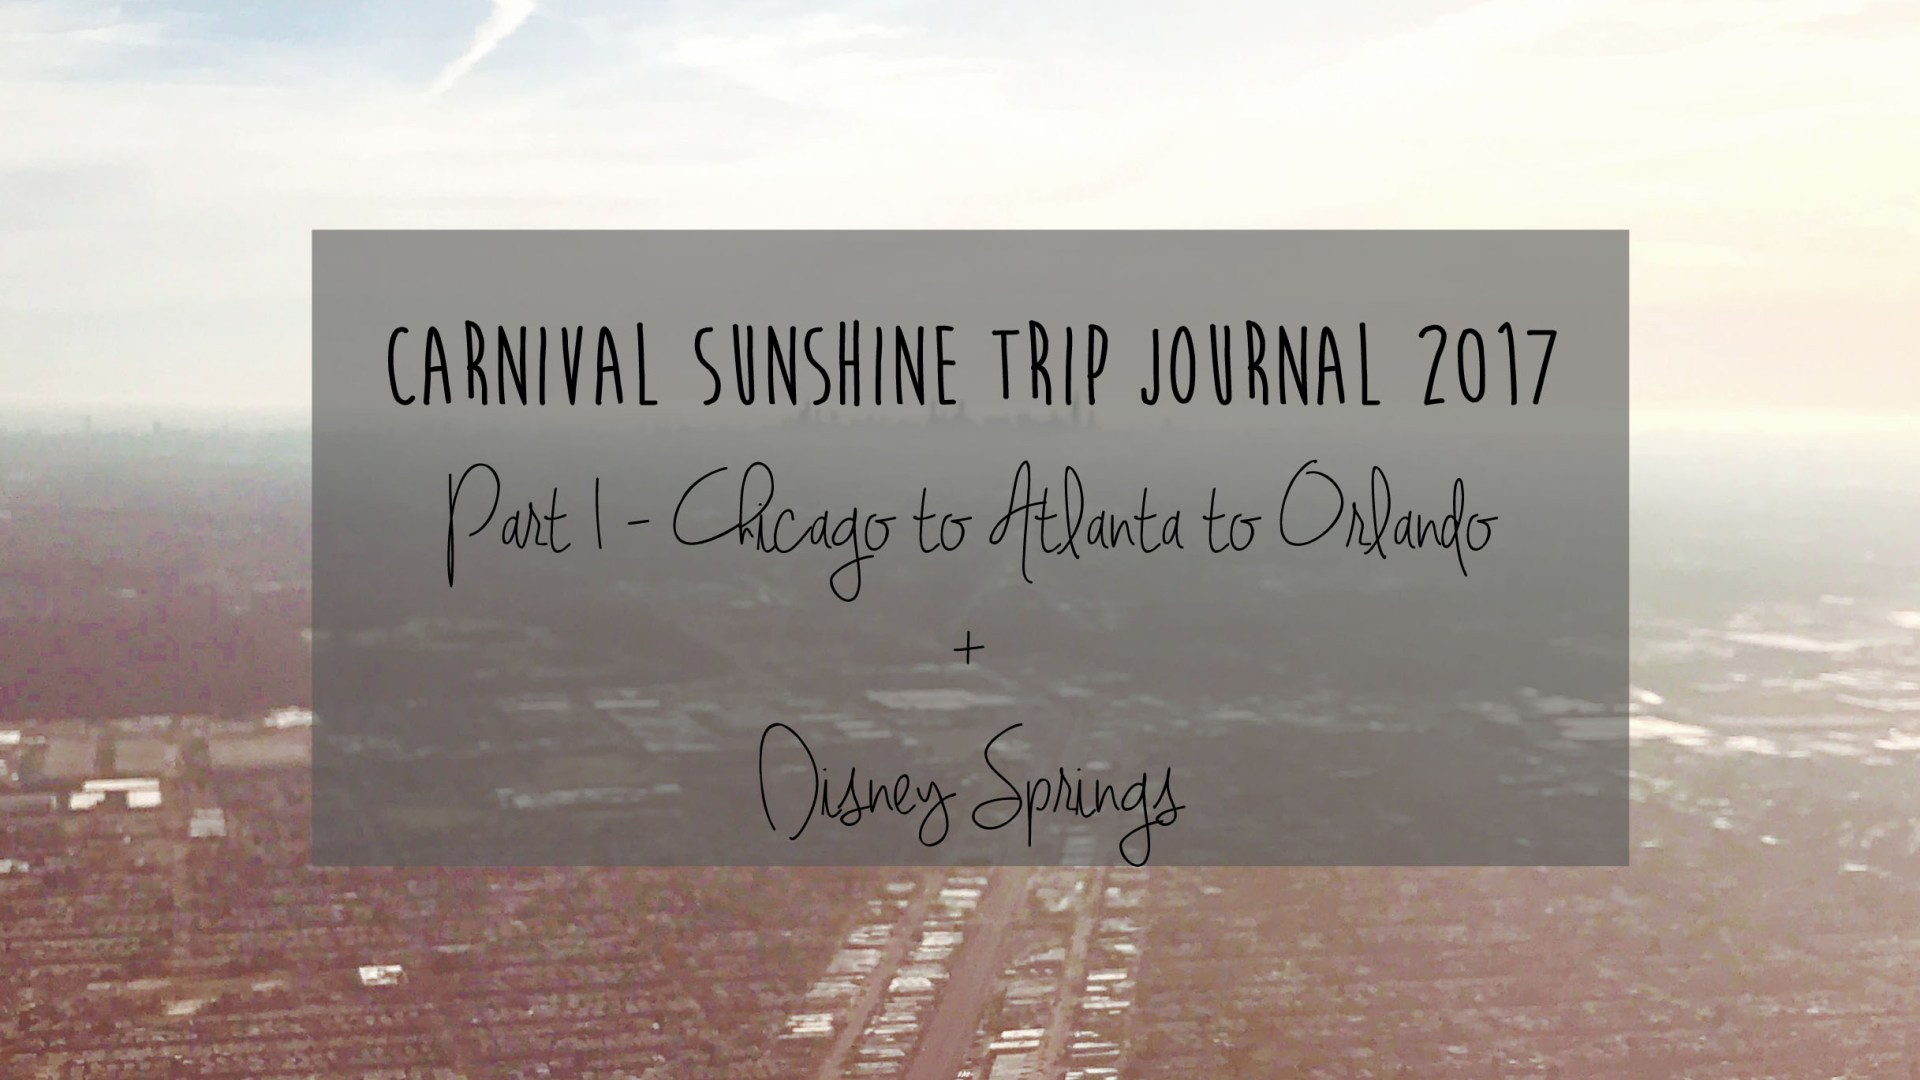 Carnival Sunshine Trip Journal: Part 1 – Chicago to Atlanta to Orlando + Disney Springs